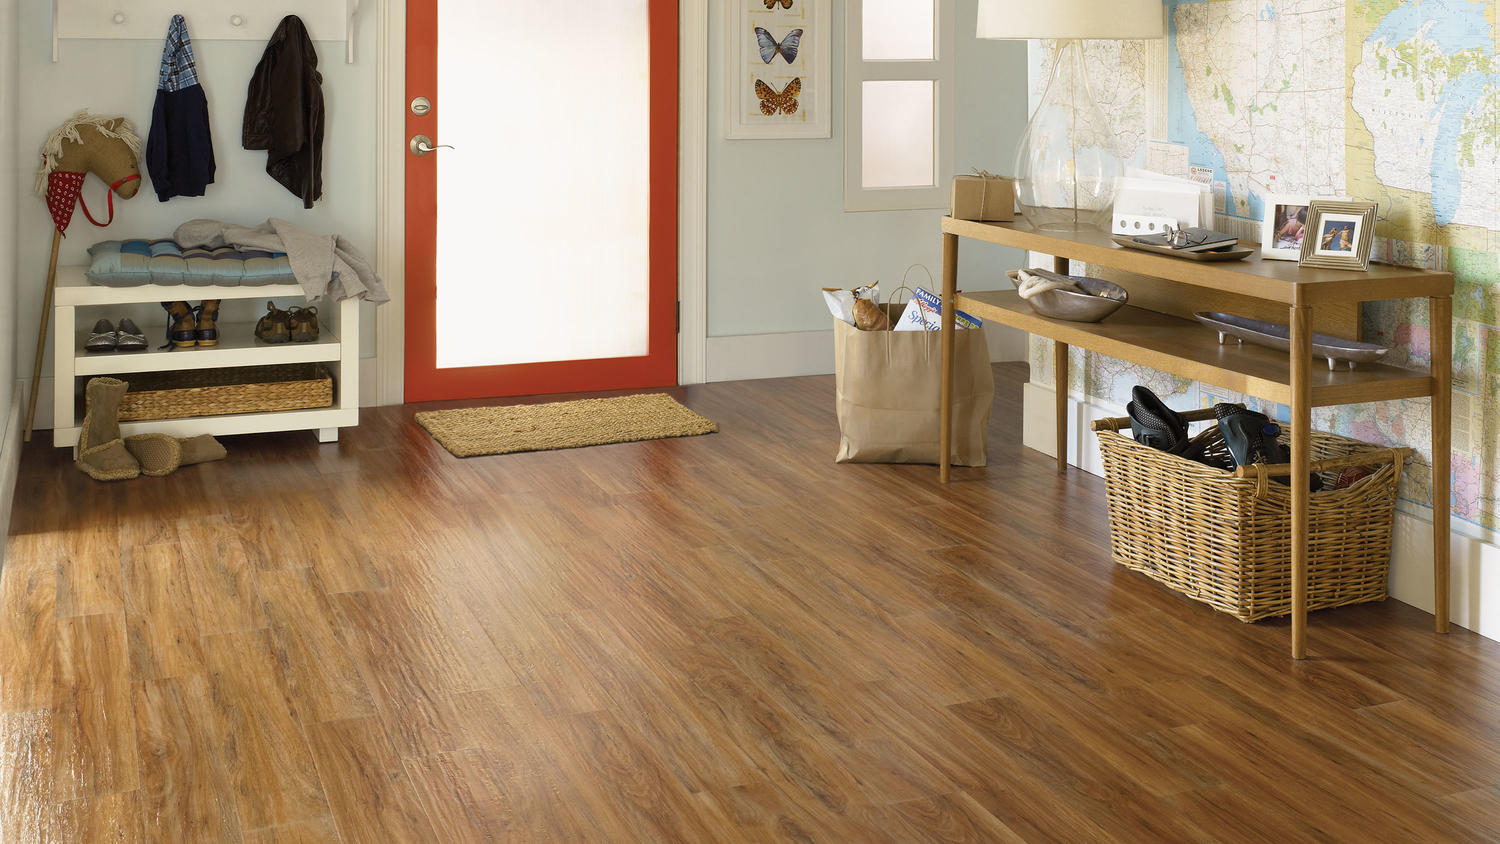 floor tarkett flooring heritage hp us rustic laminate collection en in